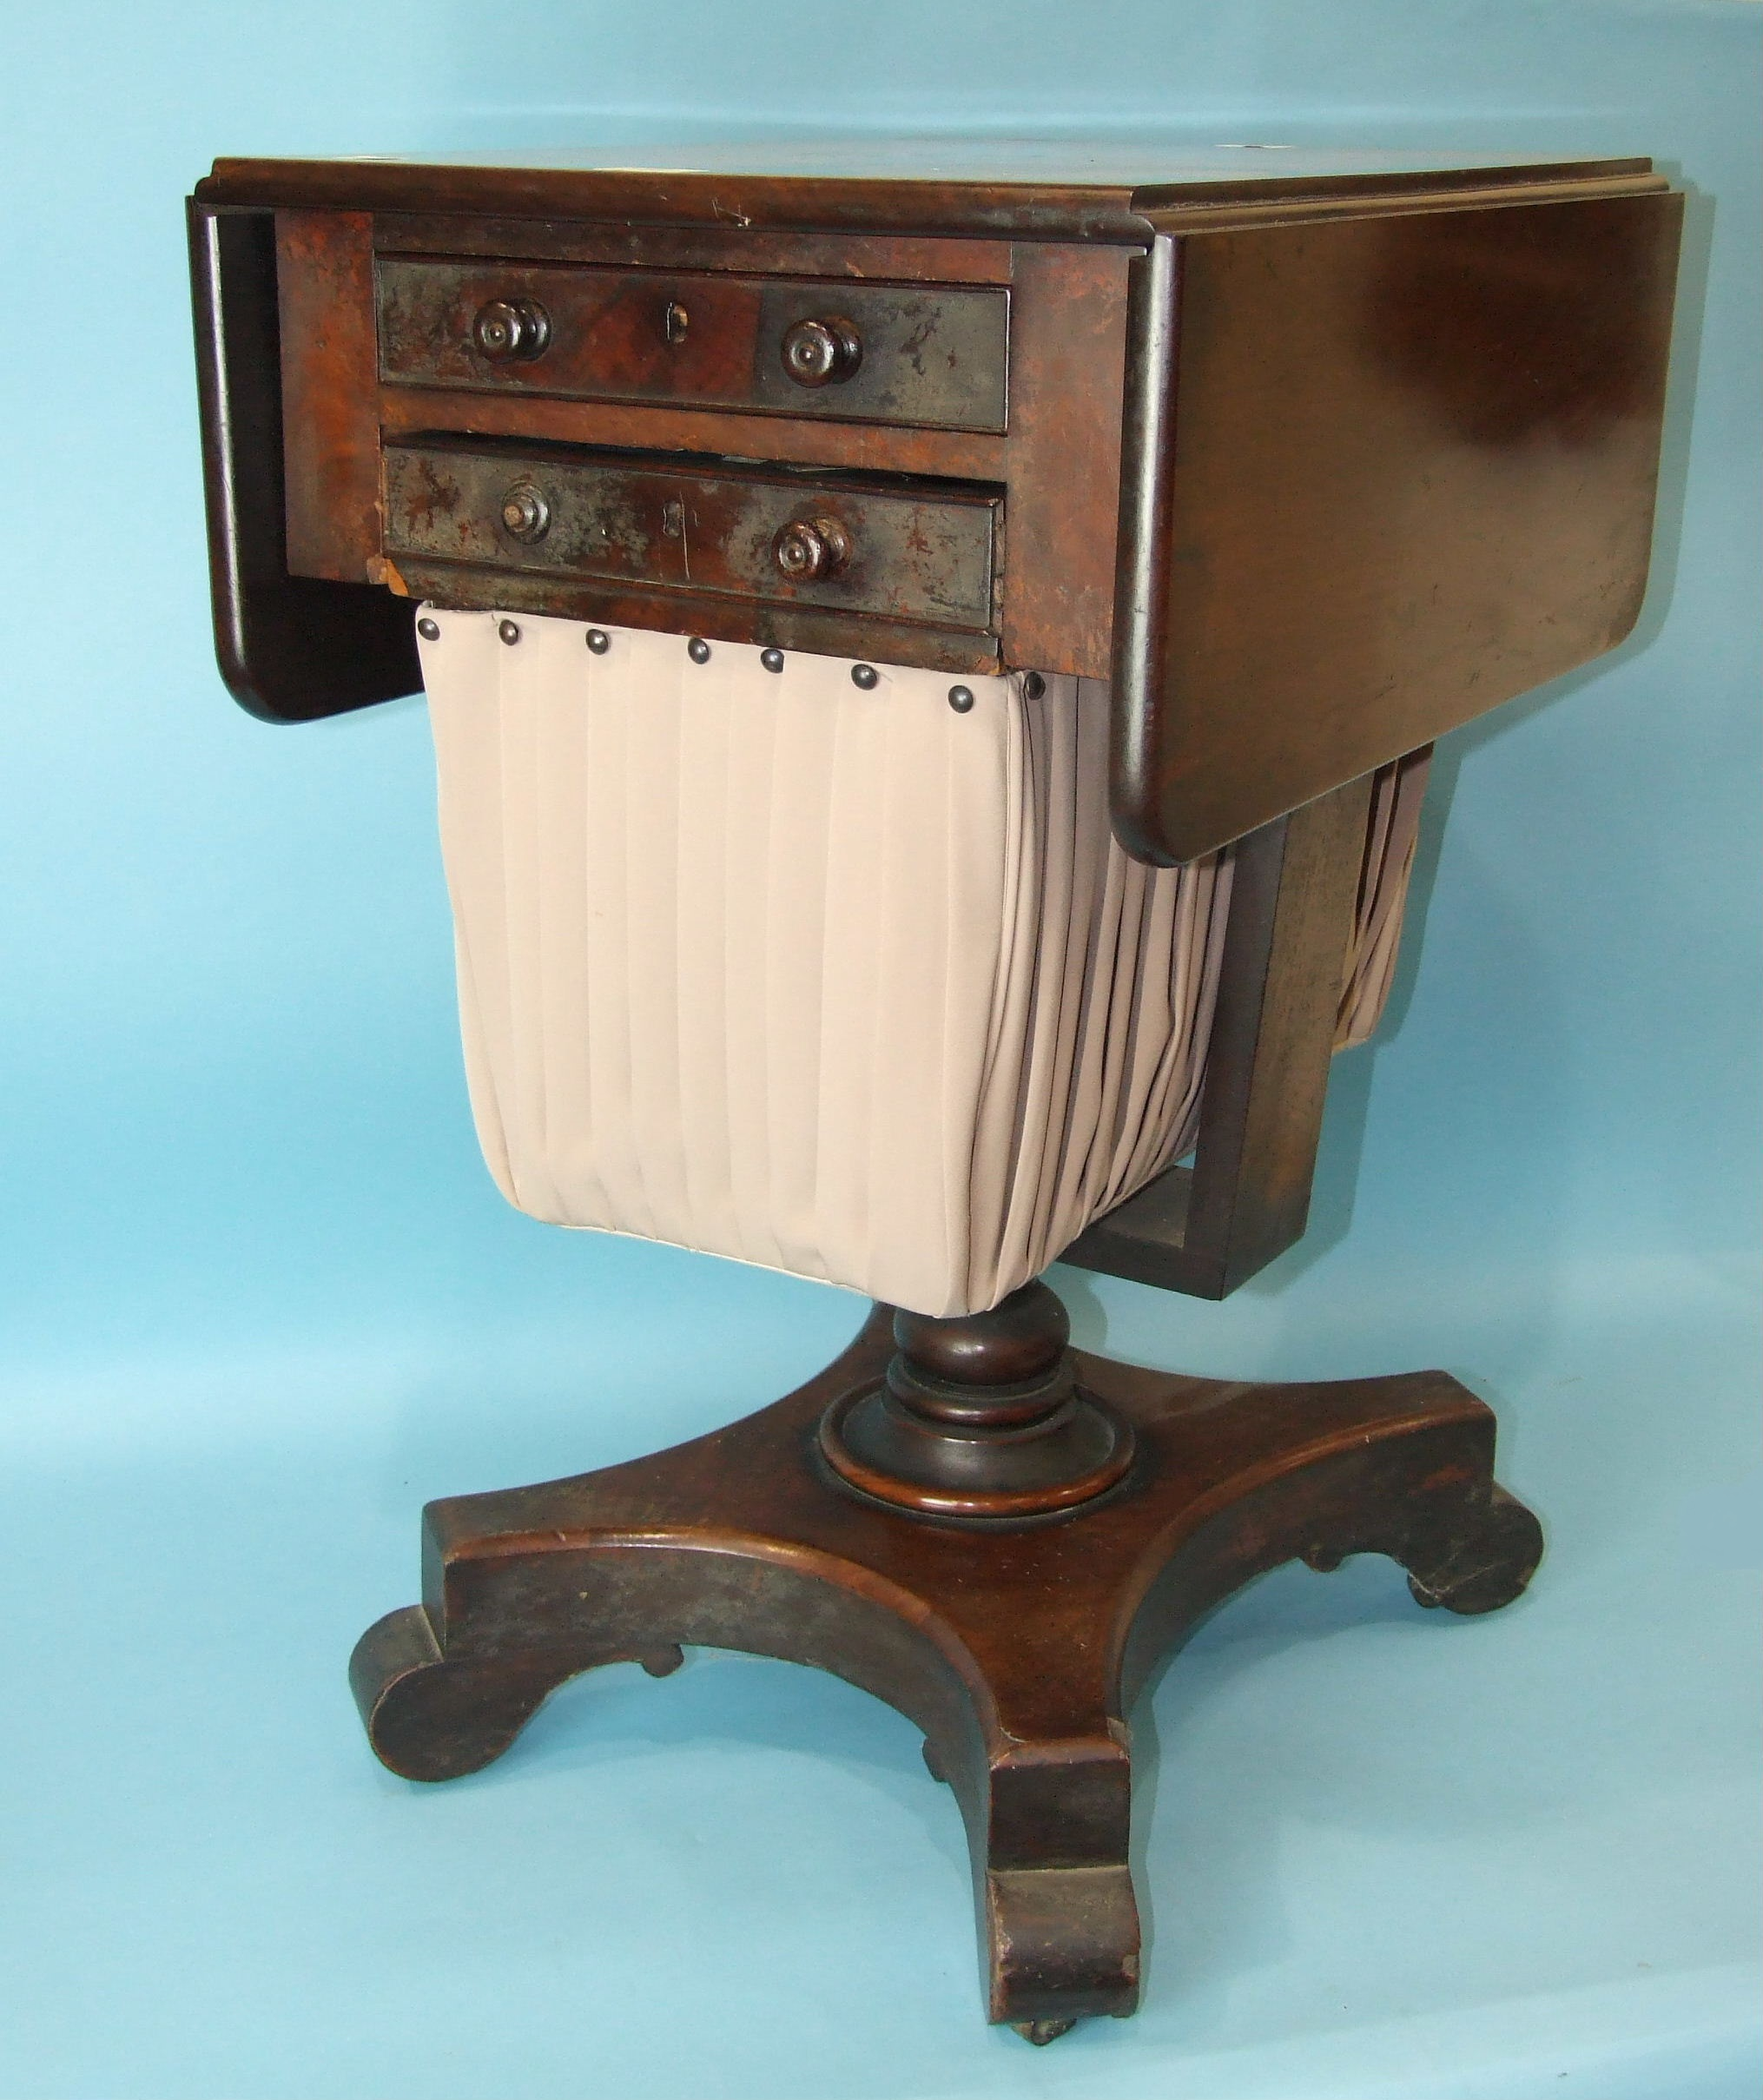 A William IV mahogany work table, the rectangular top with two drop leaves above a pair of drawers - Image 3 of 3